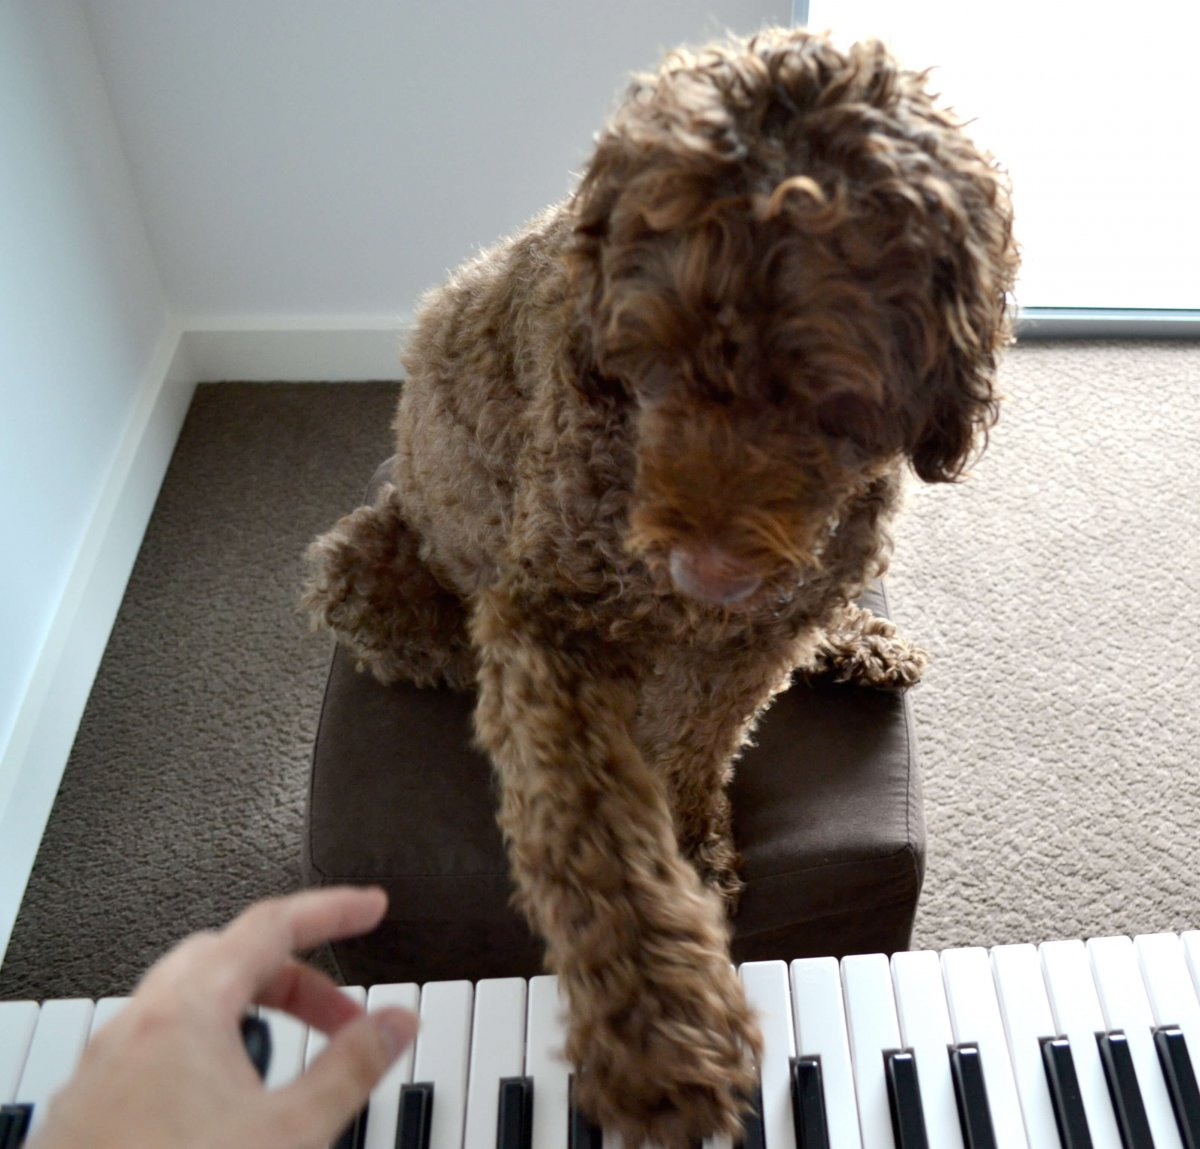 Hugo the dog practicing piano